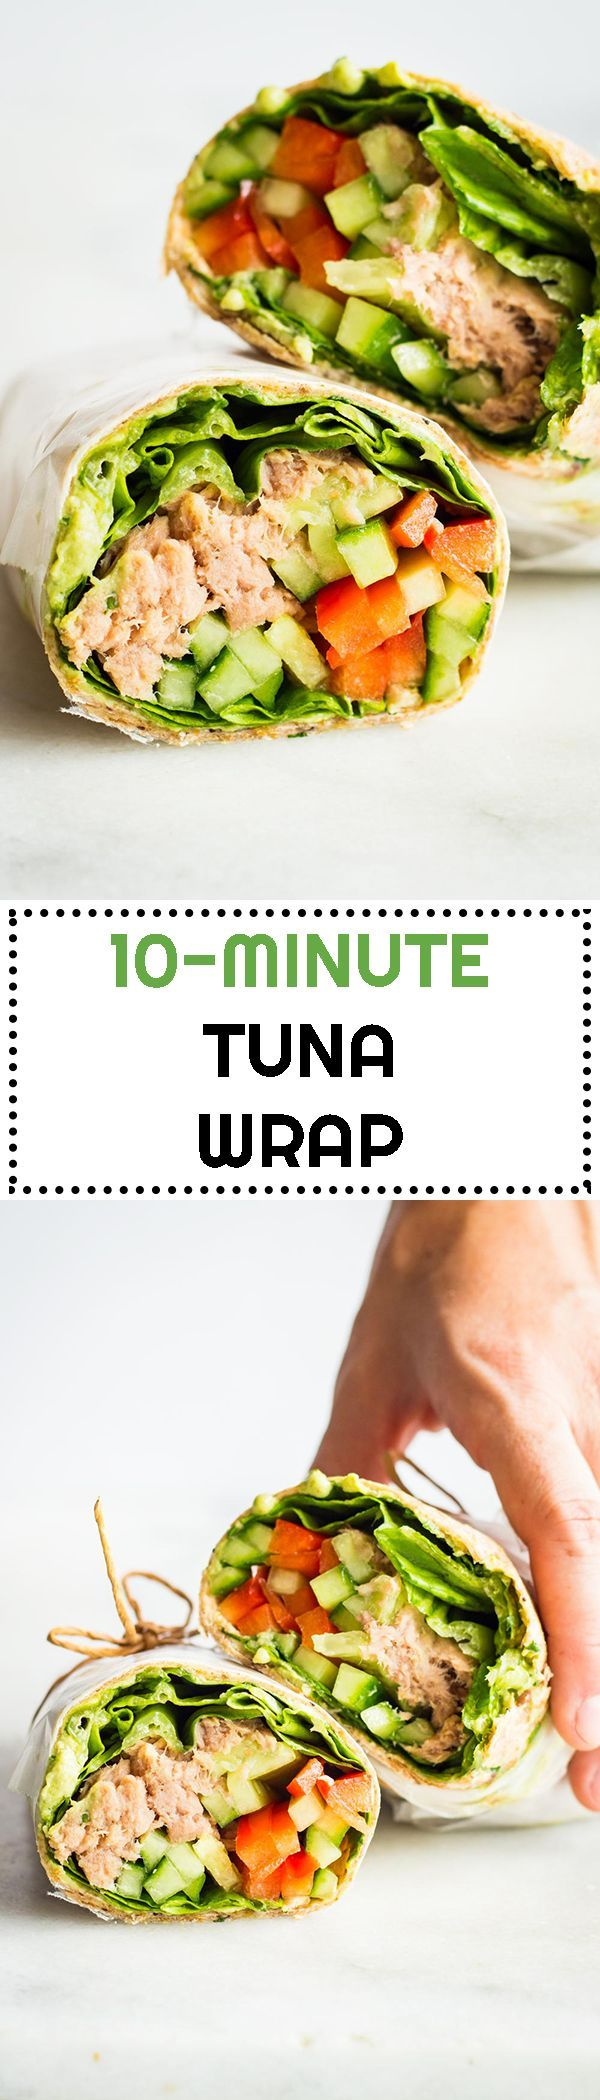 What's the most convenient take-to-work or take-to-school or take-to-park lunch ever? Definitely this healthy 10-Minute Tuna Wrap.